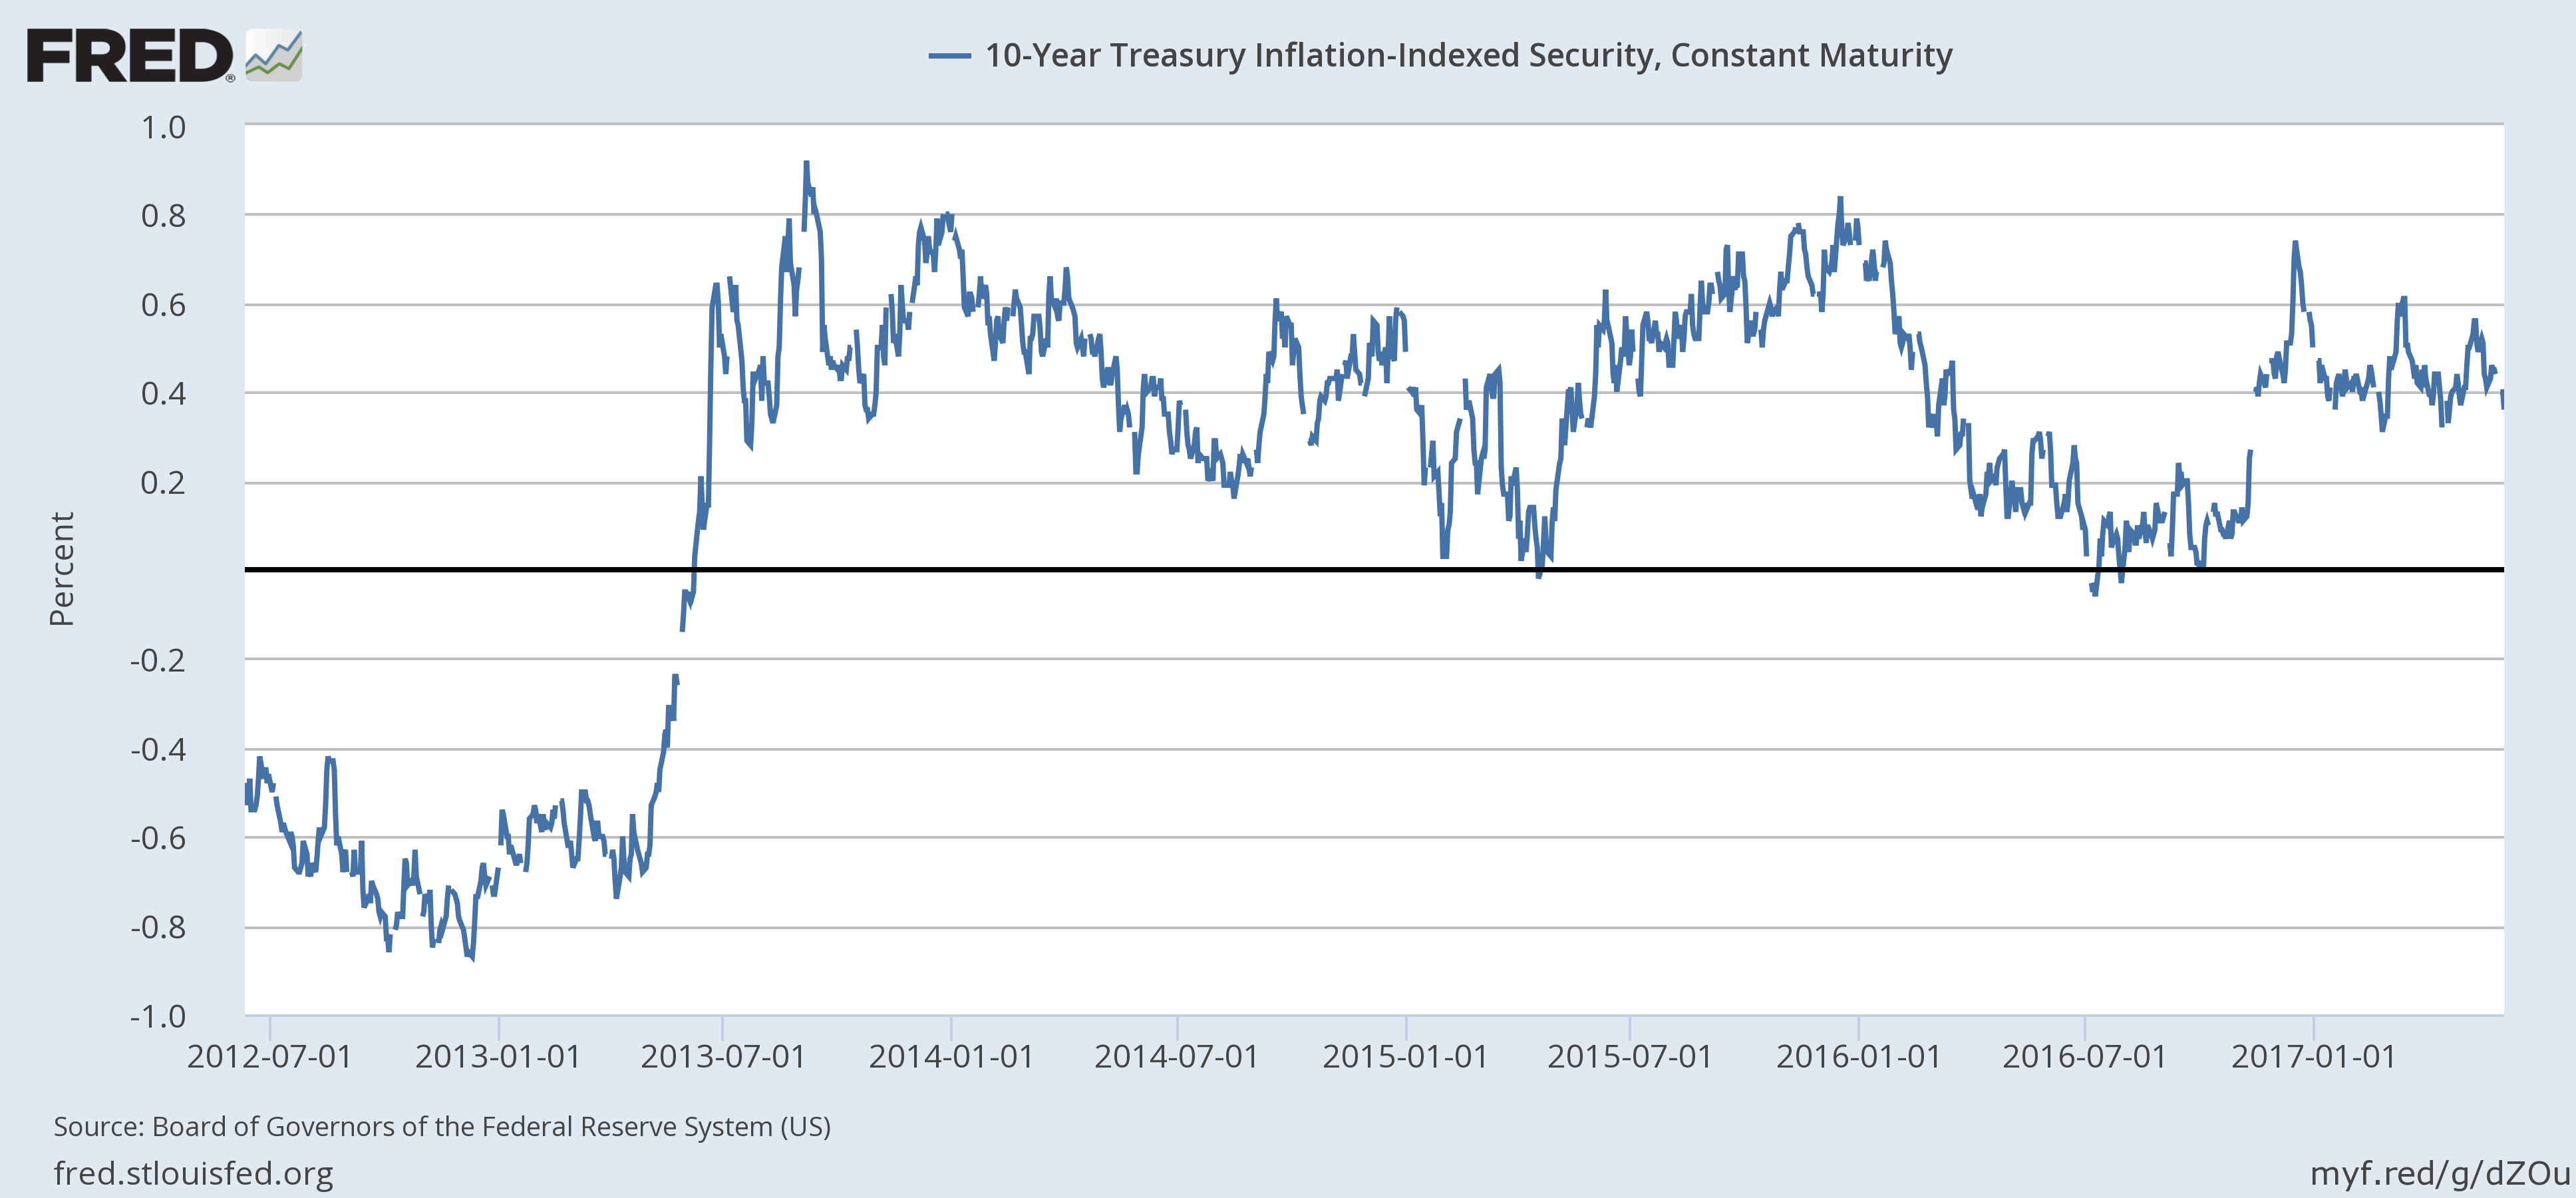 10-Year Treasury Inflation Indexed Security And Constant Maturity, July 2012 - June 2017